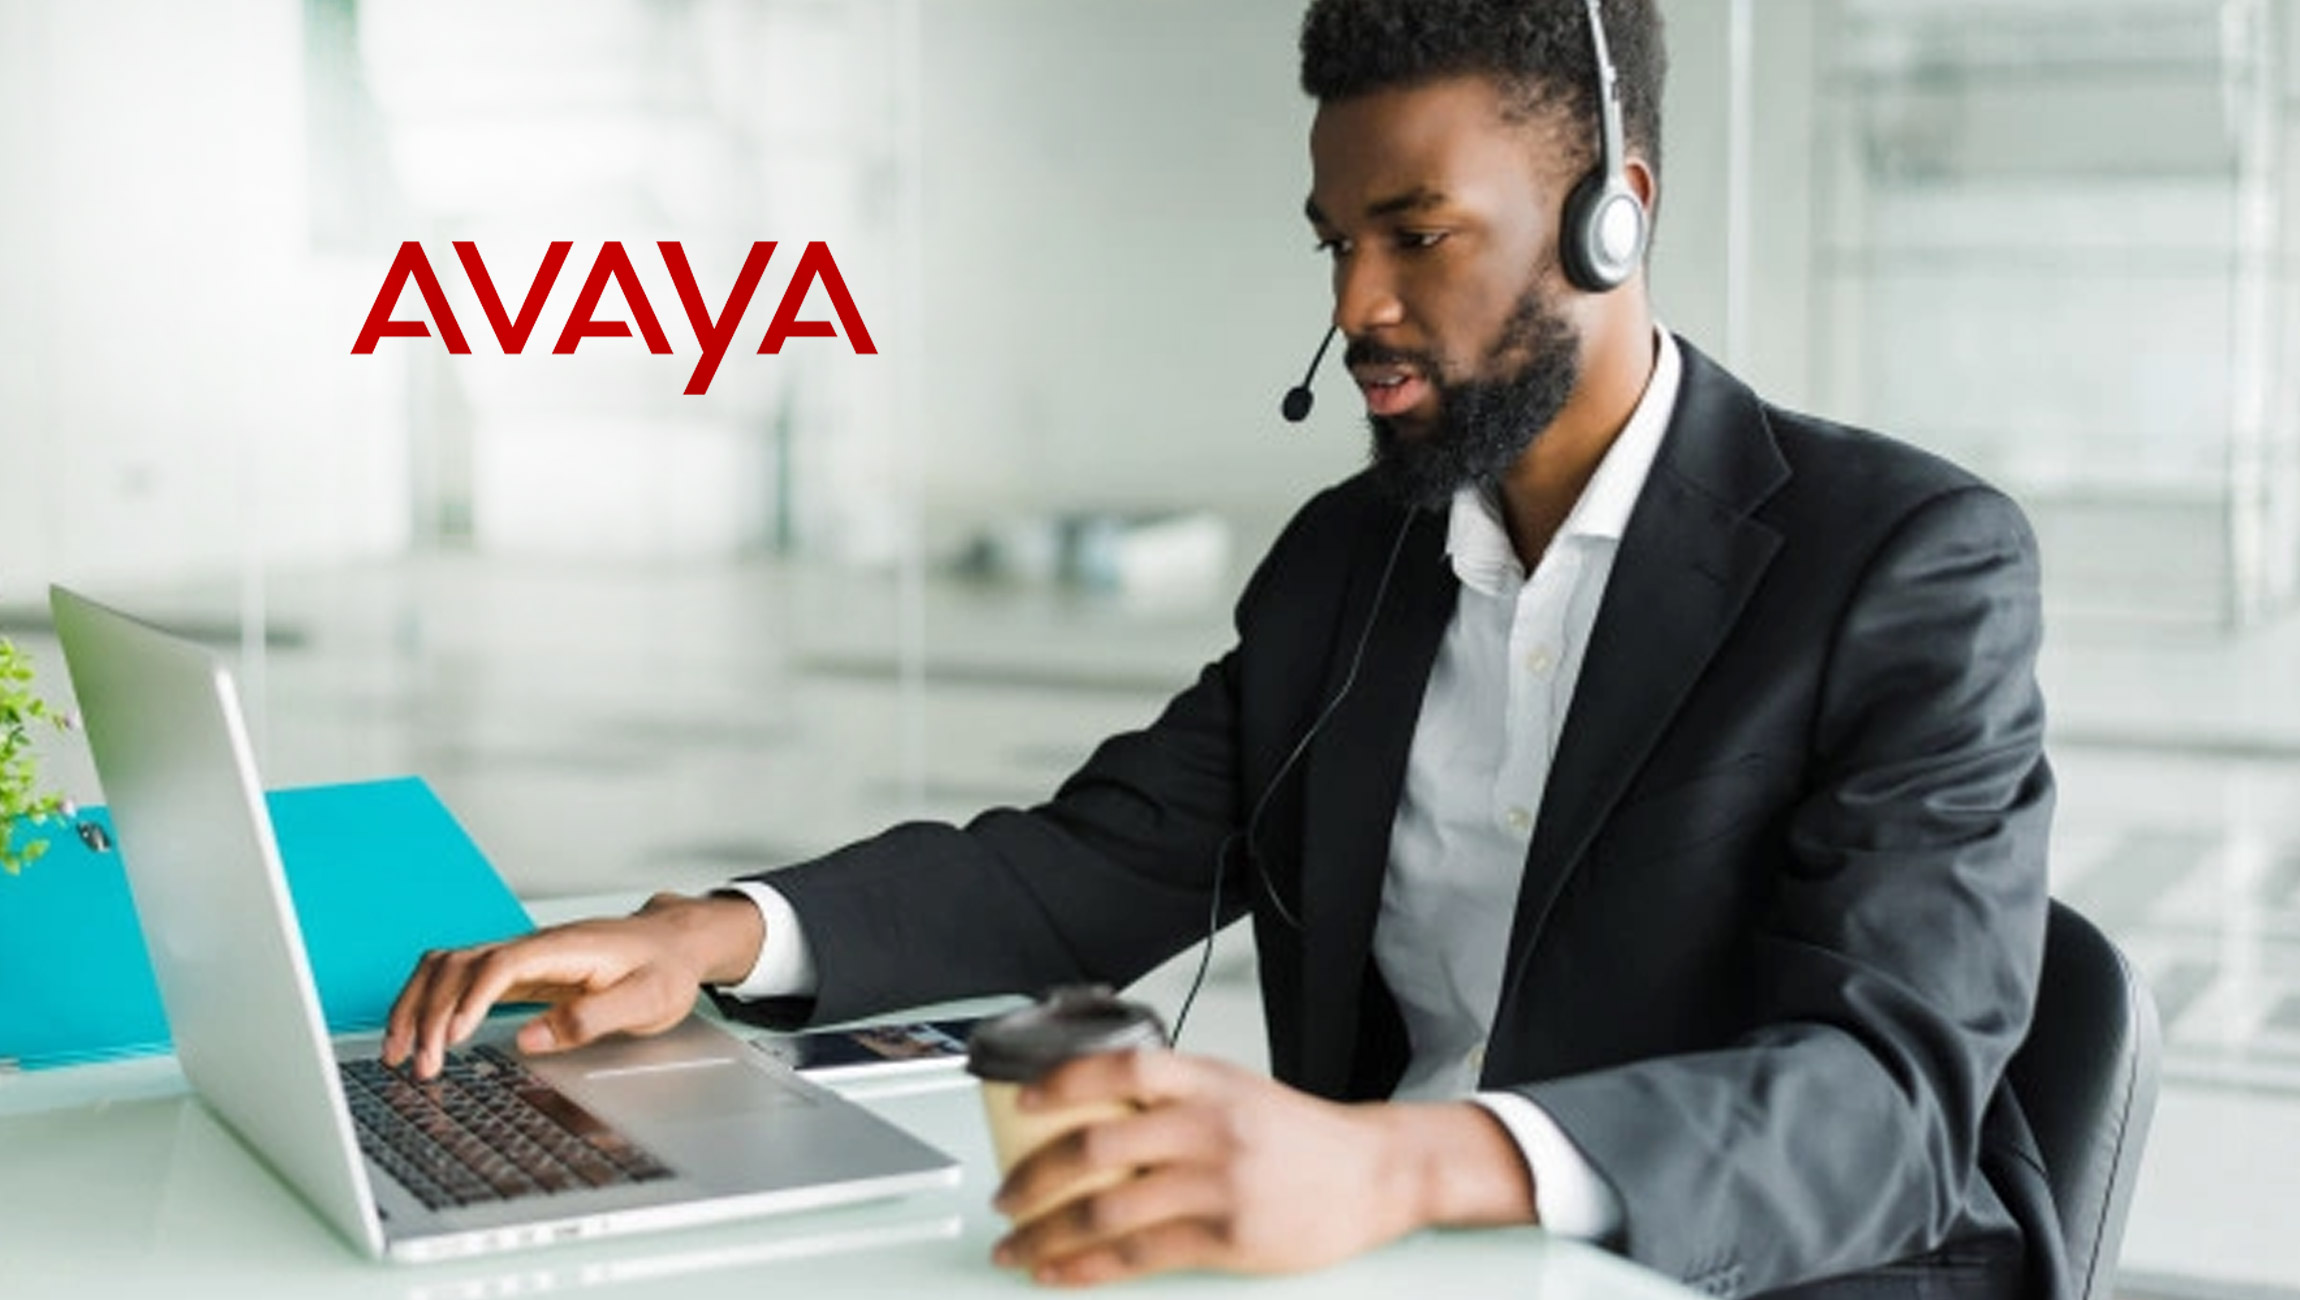 Avaya-Positioned-By-Aragon-Research-as-a-Leader-In-Intelligent-Contact-Center-Solutions_-Powering-Next-Generation-Customer-Experiences-Through-Advanced-AI